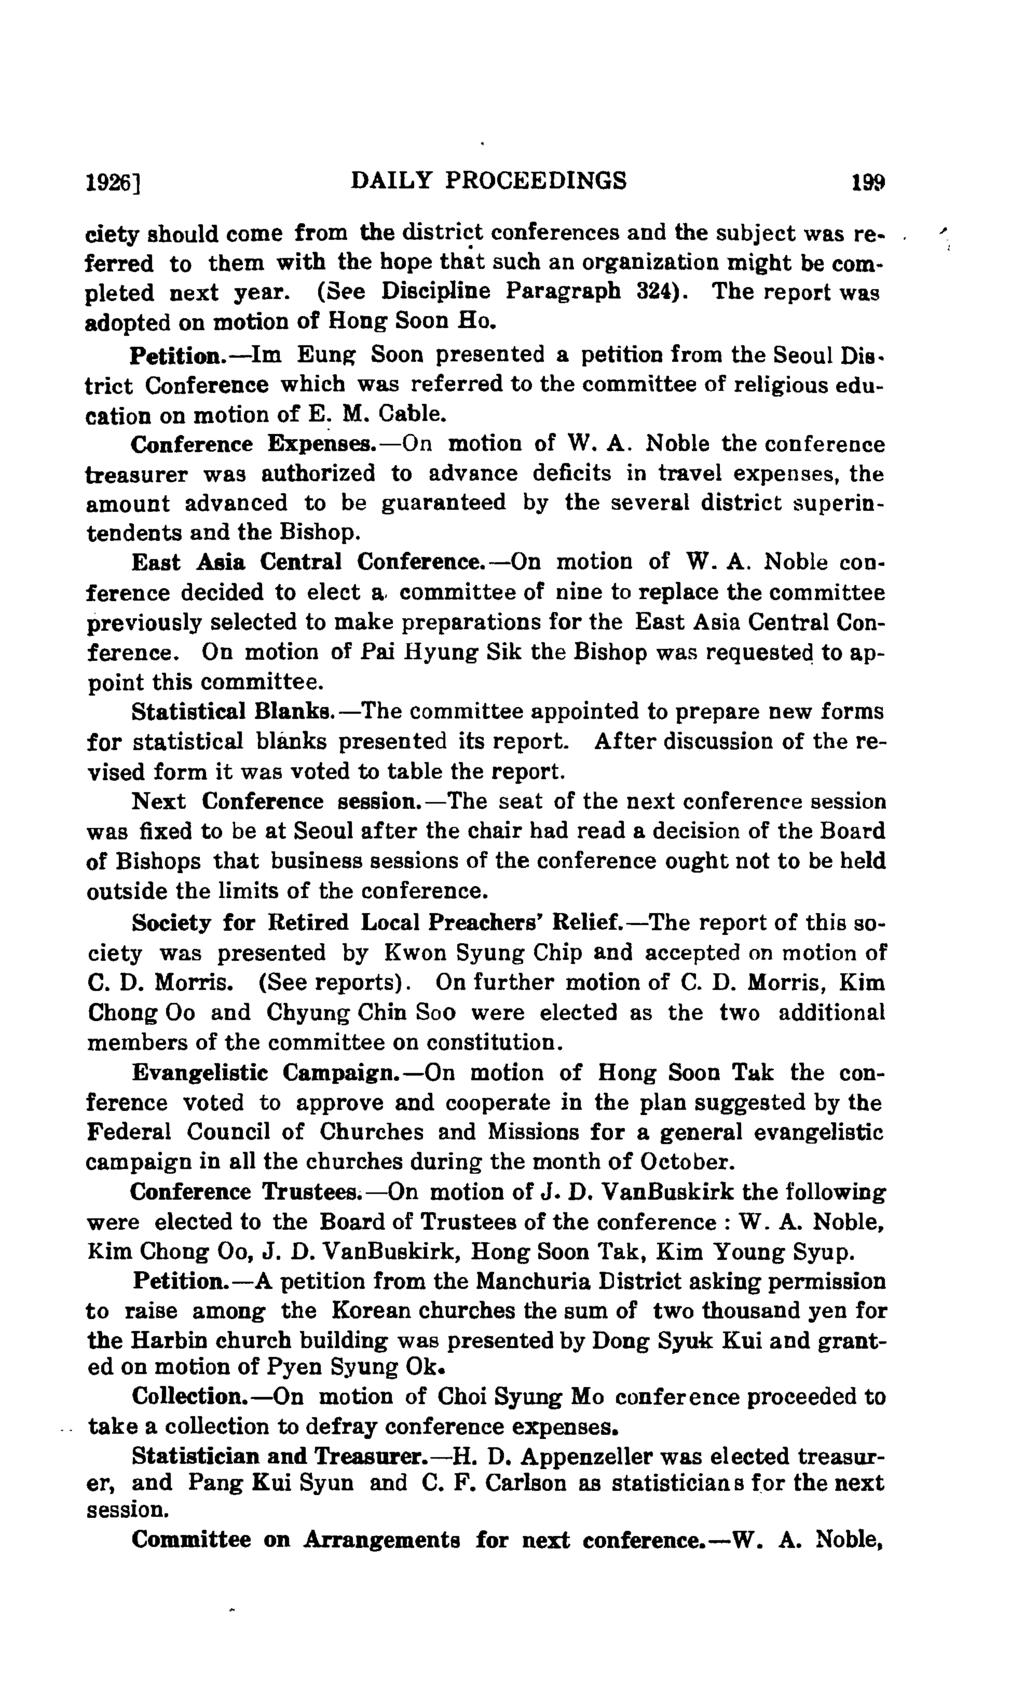 1926] DAILY PROCEEDINGS 199 ciety should come from the district conferences and the subject was re ferred to them with the hope that such an organization might be completed next year.